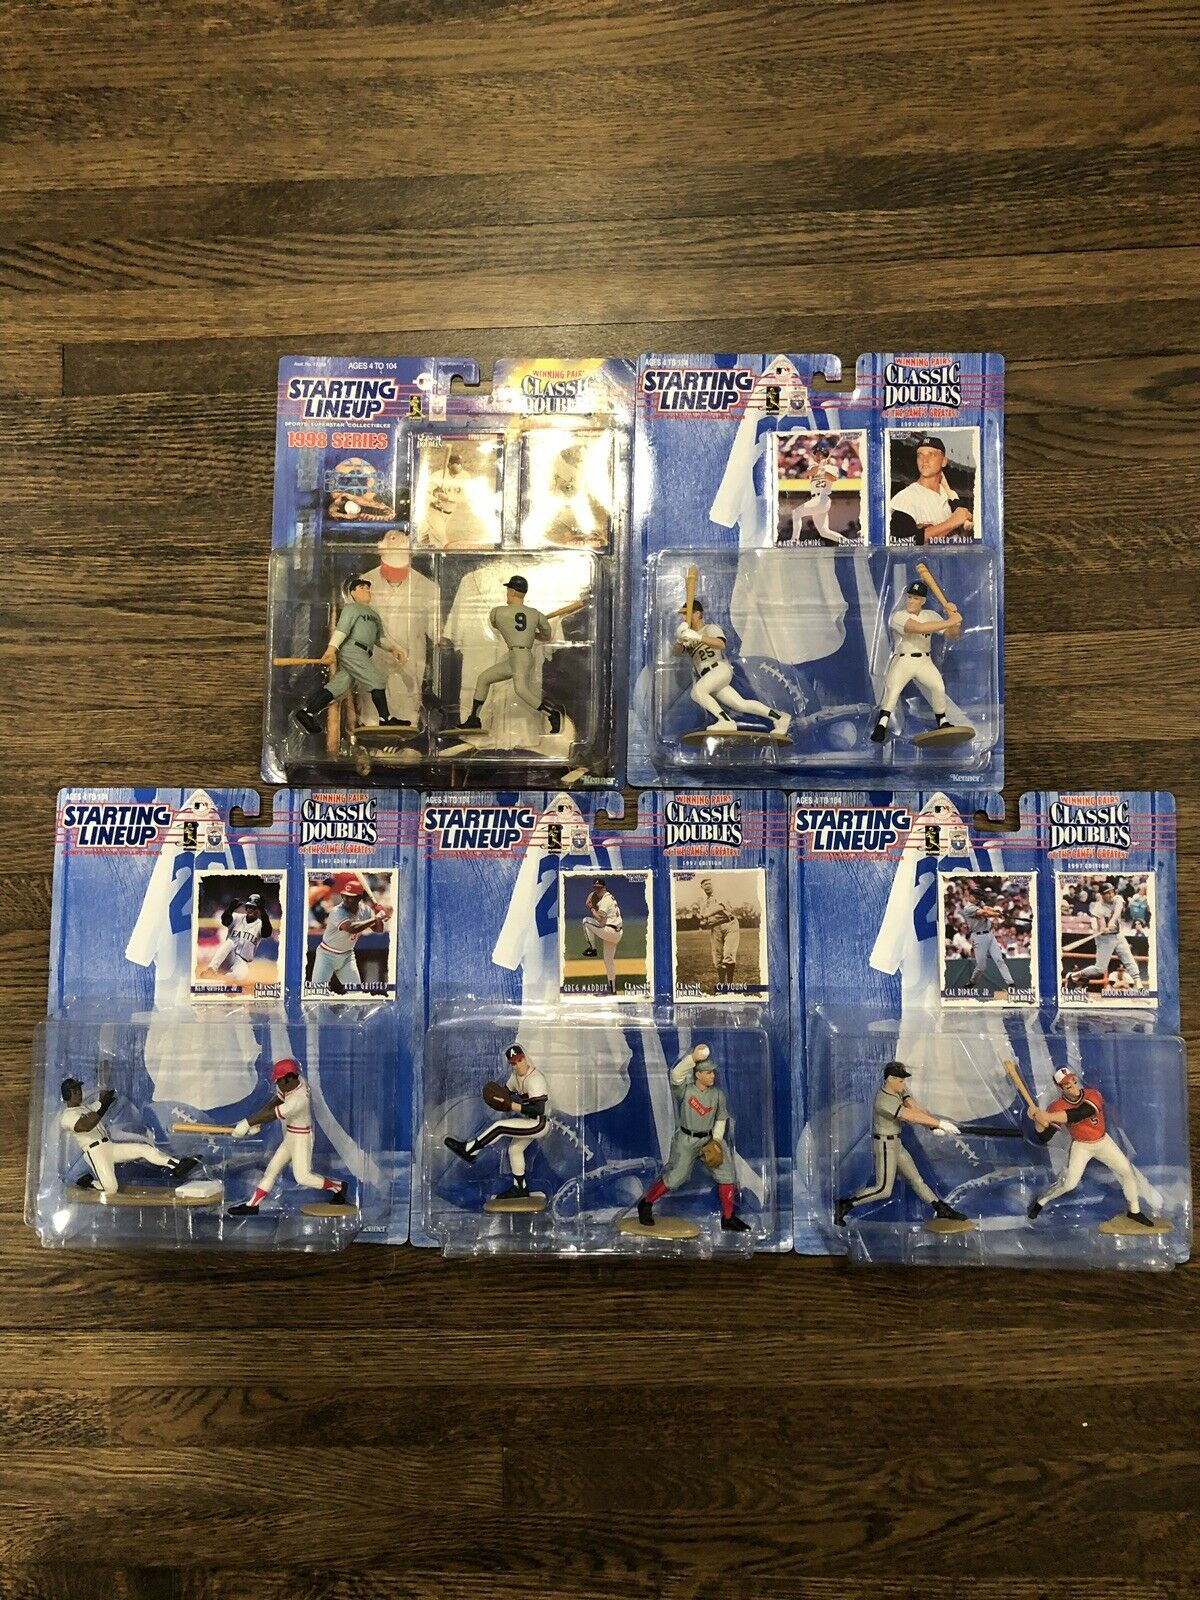 SLU LOT.  RUTH. MARIS GRIFFEY RIPKEN MADDUX ETC MLB 5 Pcs Mint